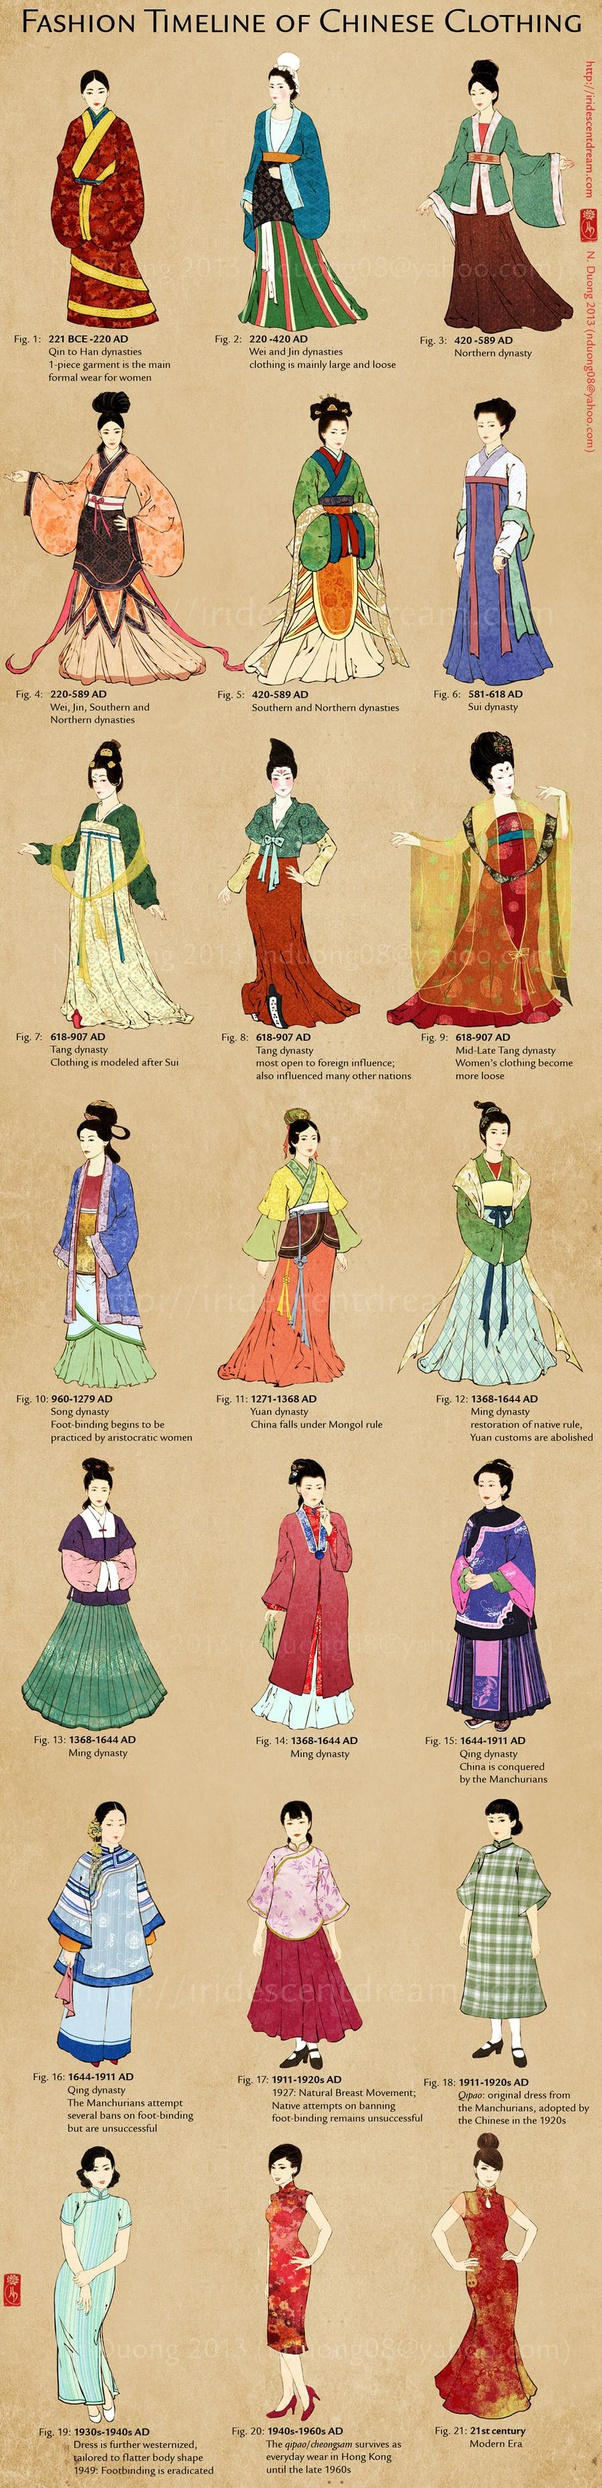 When Did The Chinese Stop Wearing The Traditional Chinese Clothing As It Seems Like Even In 1900s They Still Did And Start Wearing More Modern Clothes Quora